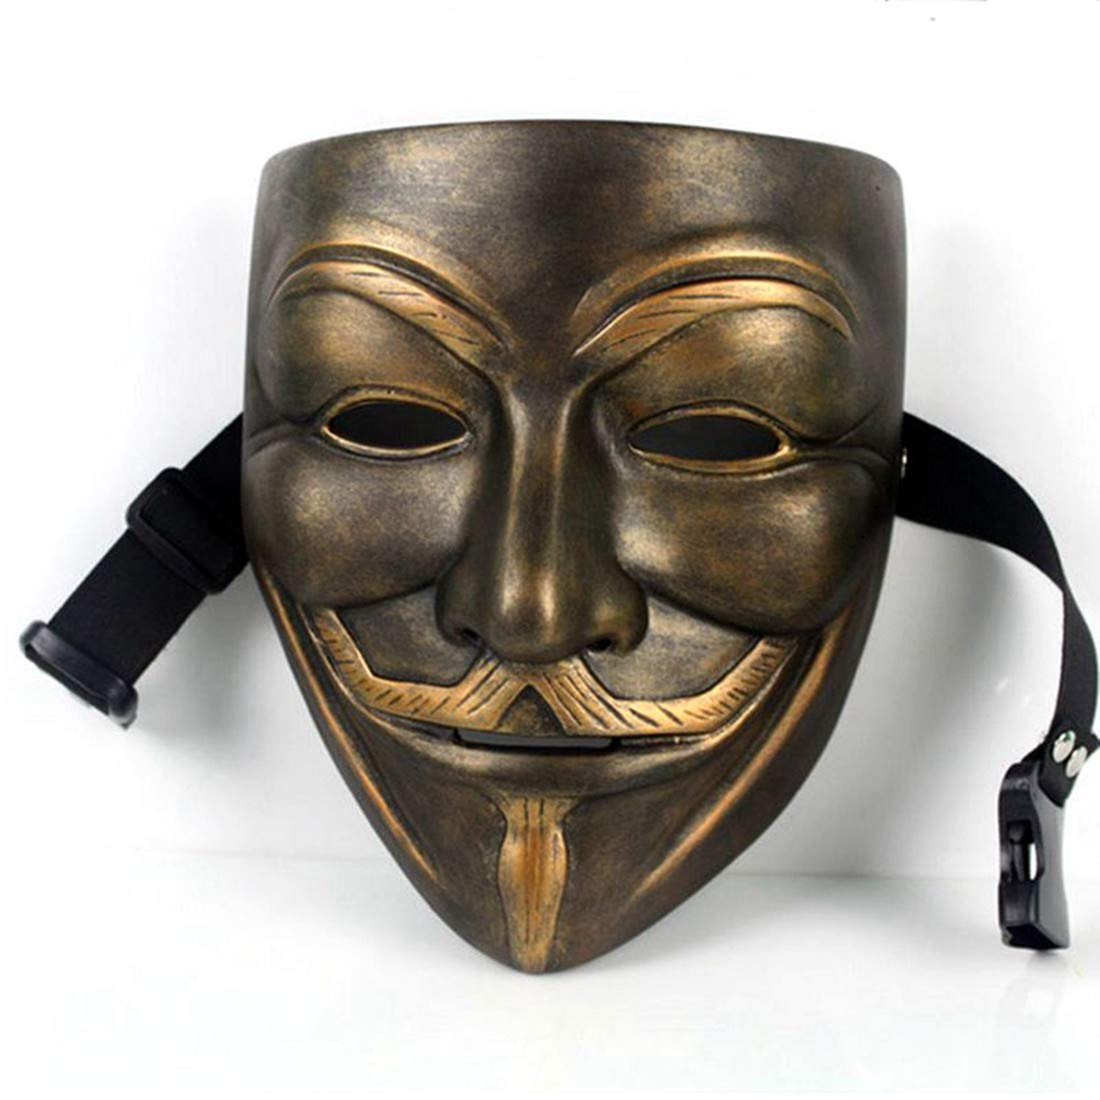 V for Vendetta Mask Anonymous Movie Guy Fawkes Halloween Masquerade Party Face March Protest Costume Accessory